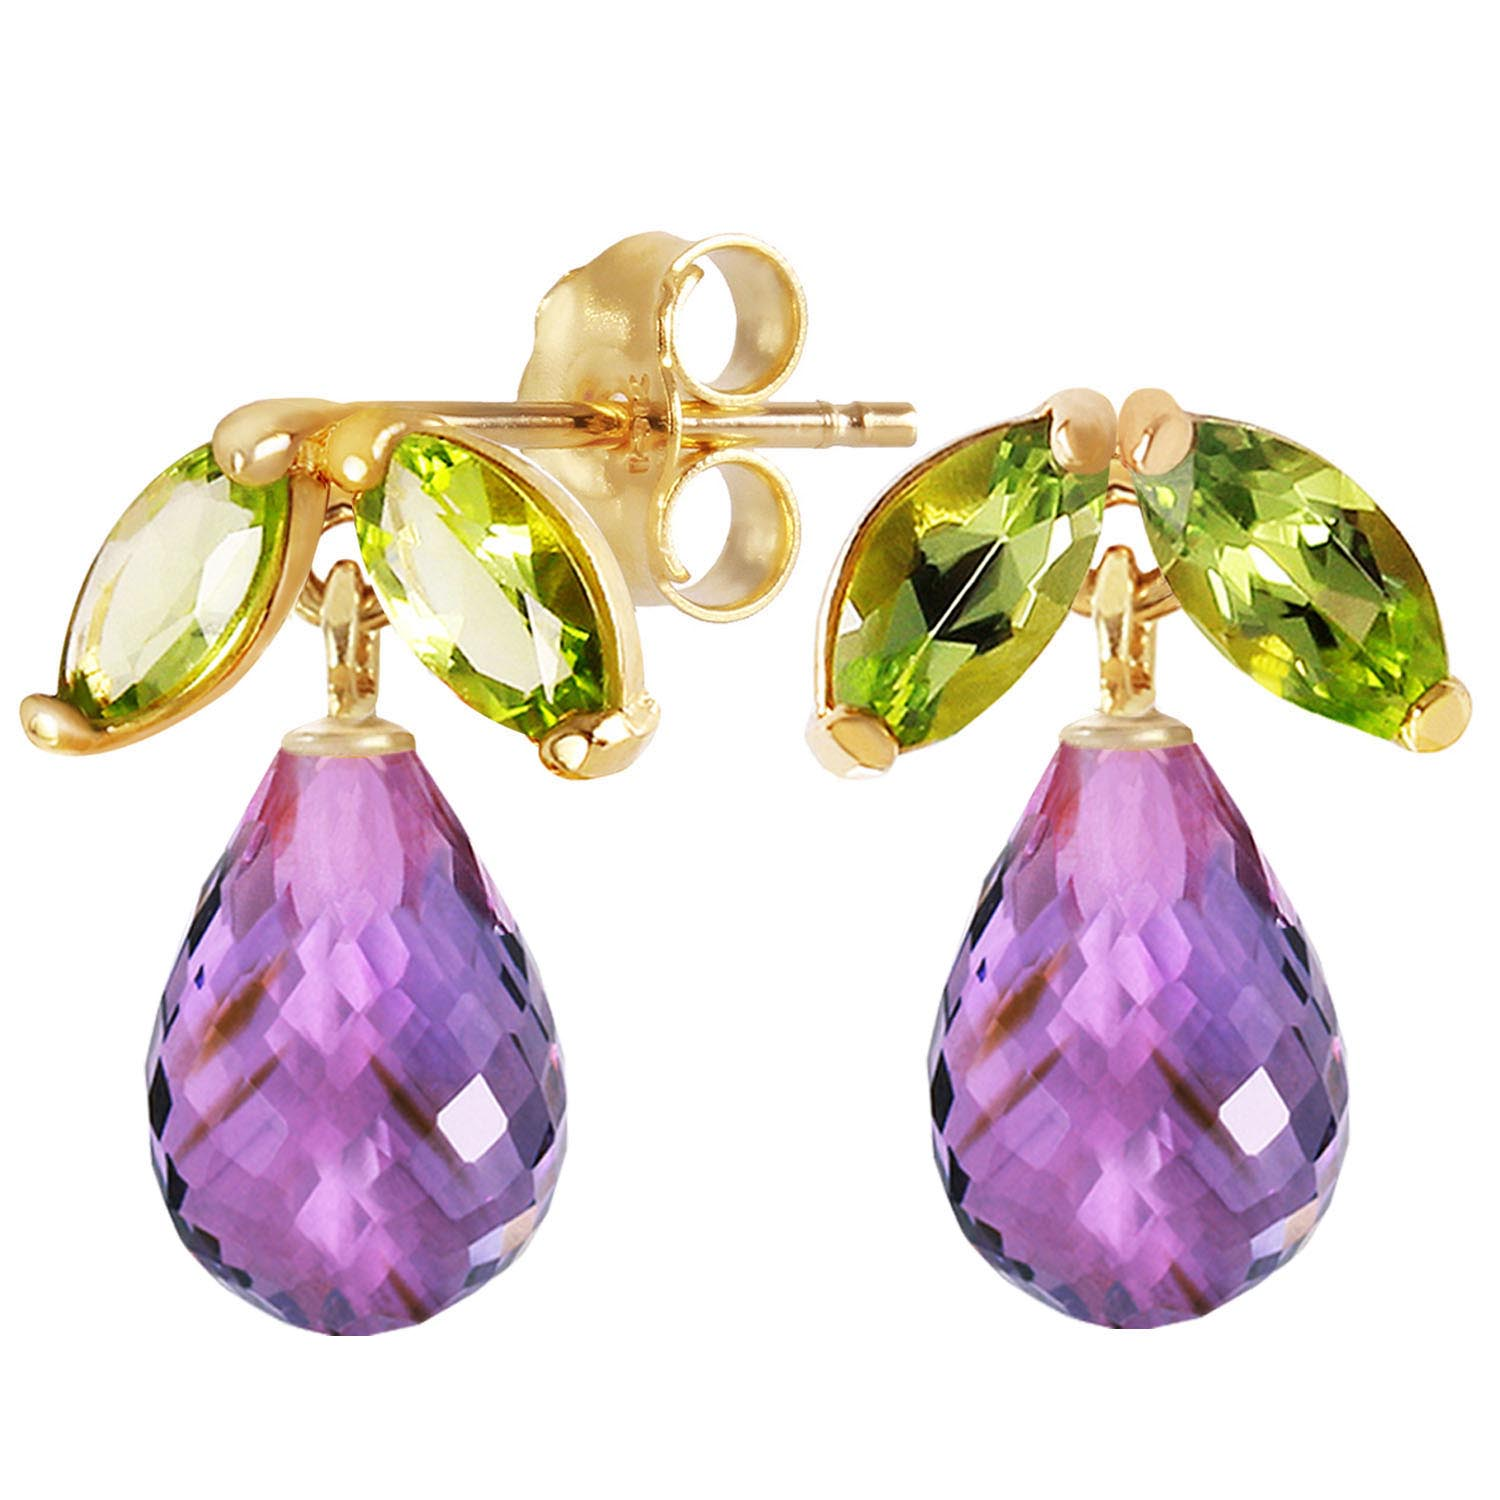 Amethyst and Peridot Snowdrop Stud Earrings 3.4ctw in 9ct Gold